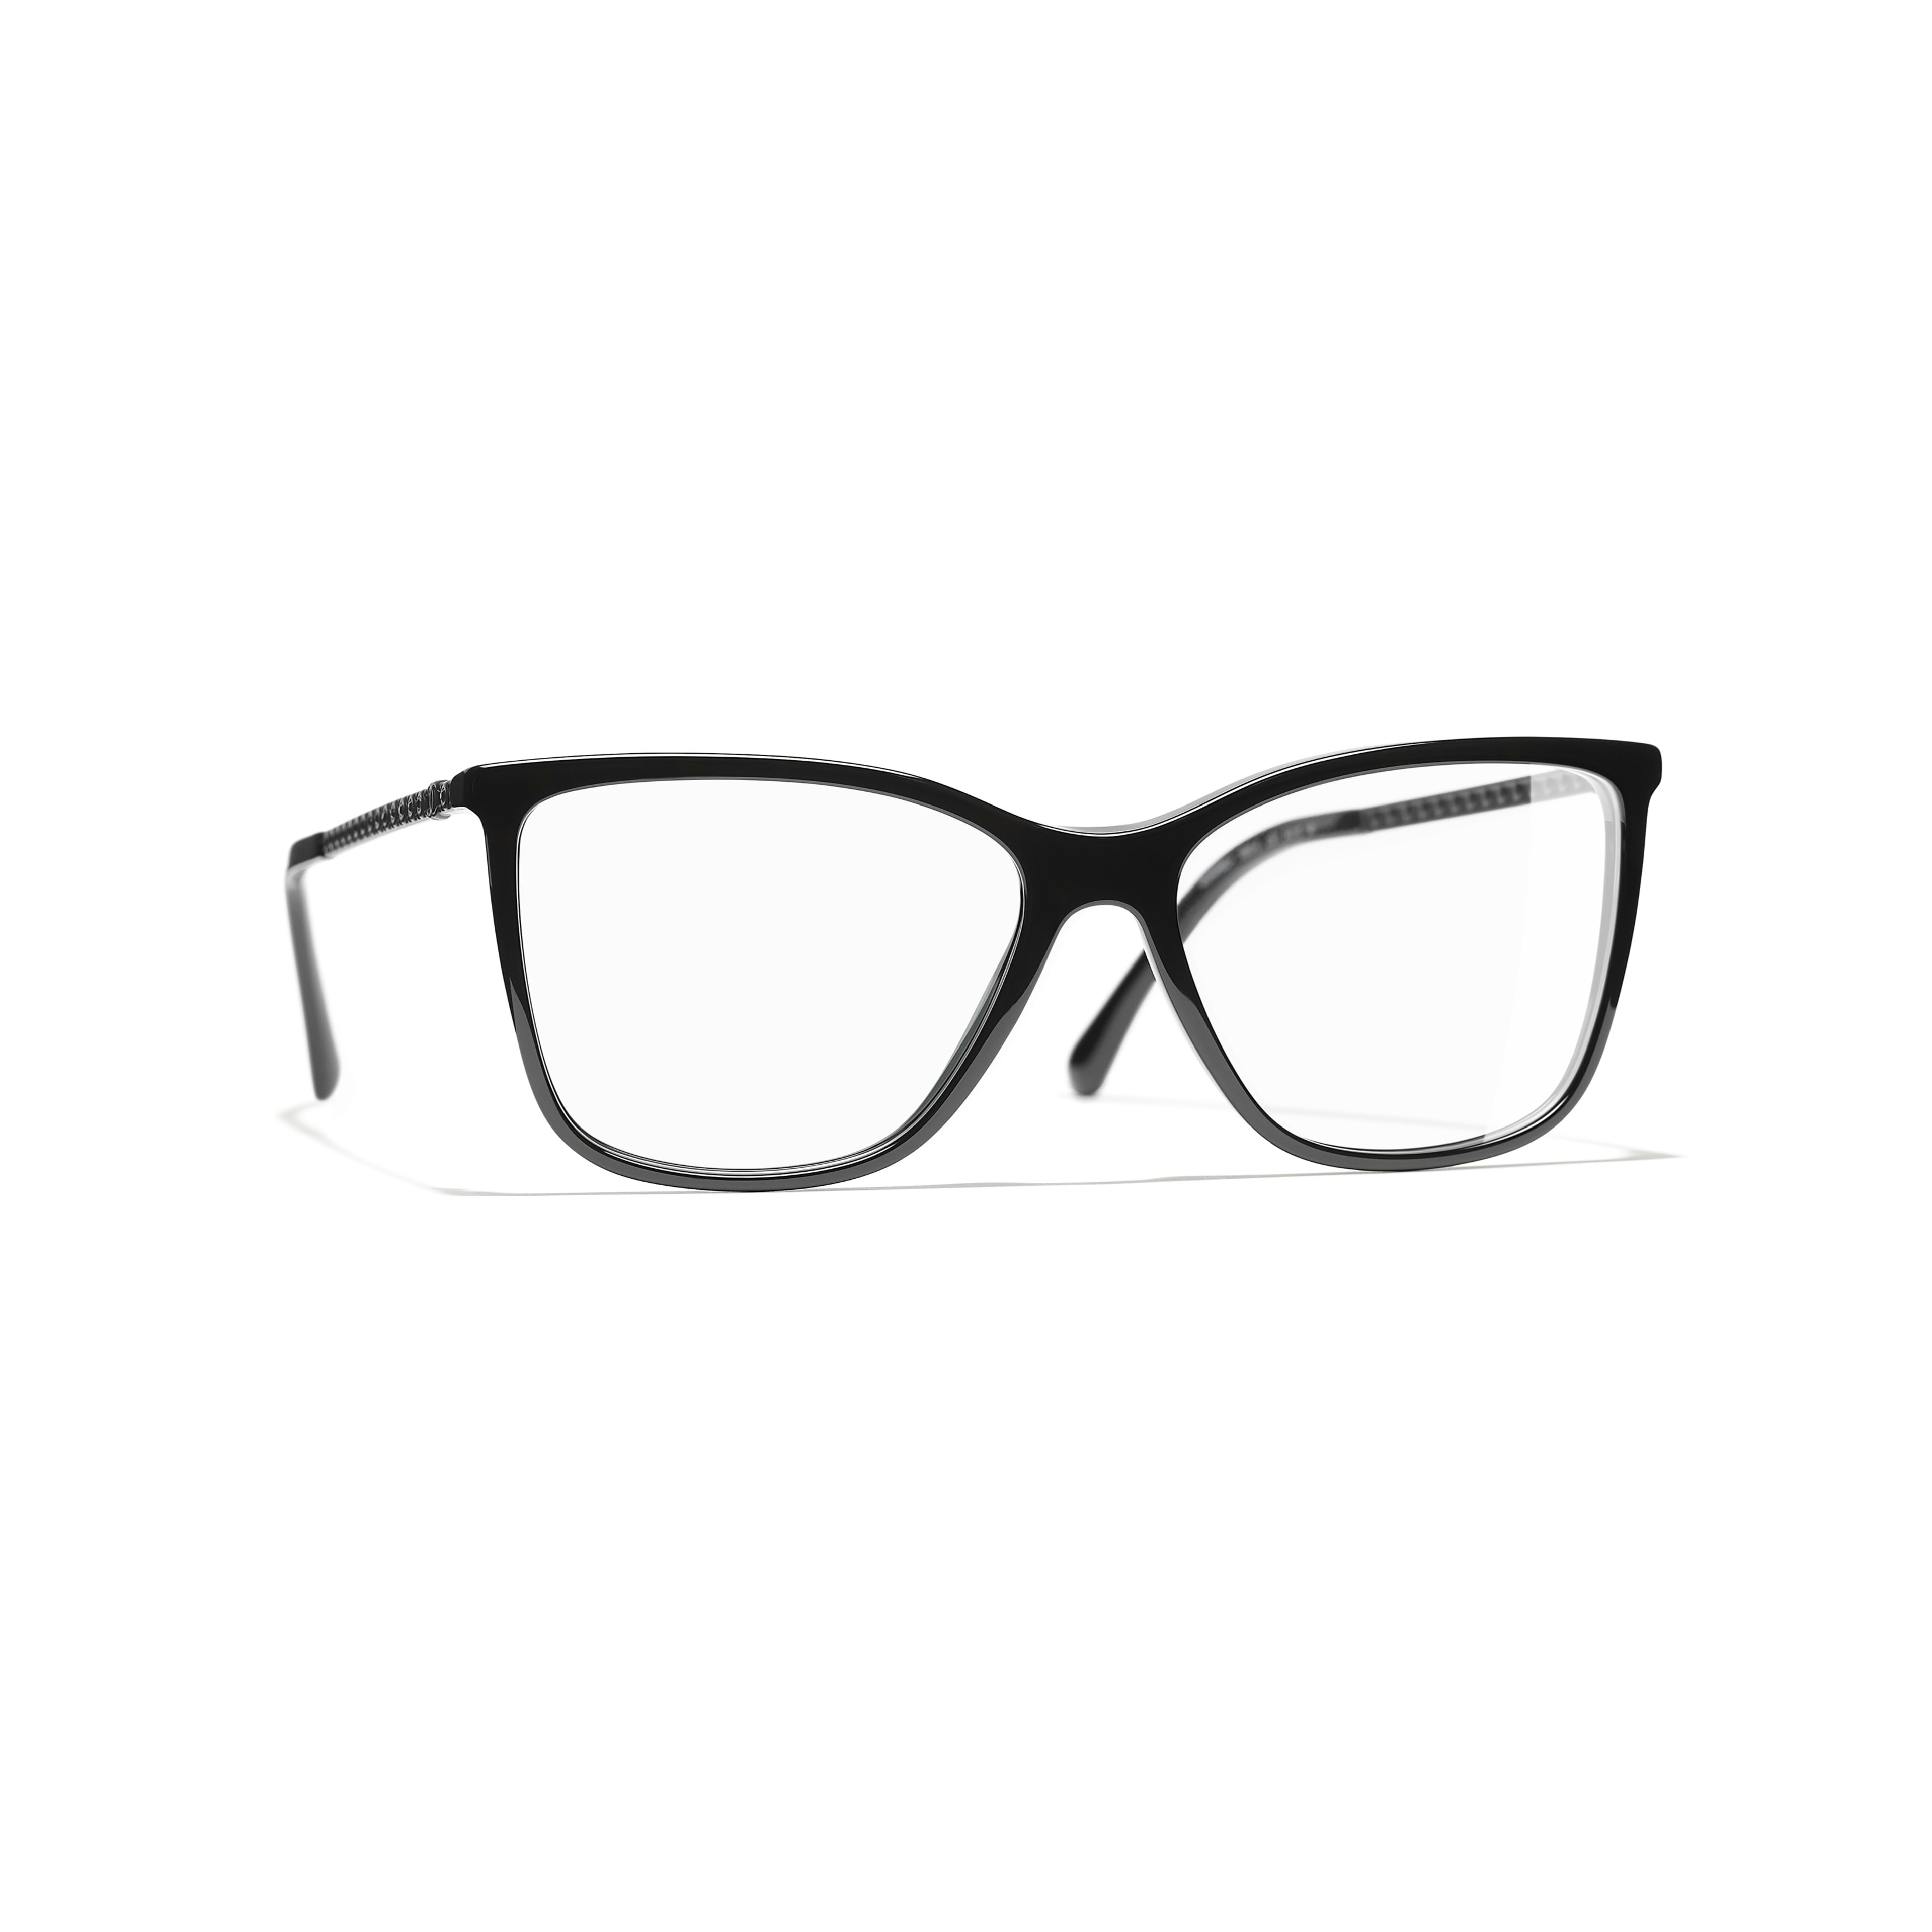 Rectangle Eyeglasses - Black - Acetate & Diamanté - CHANEL - Default view - see standard sized version